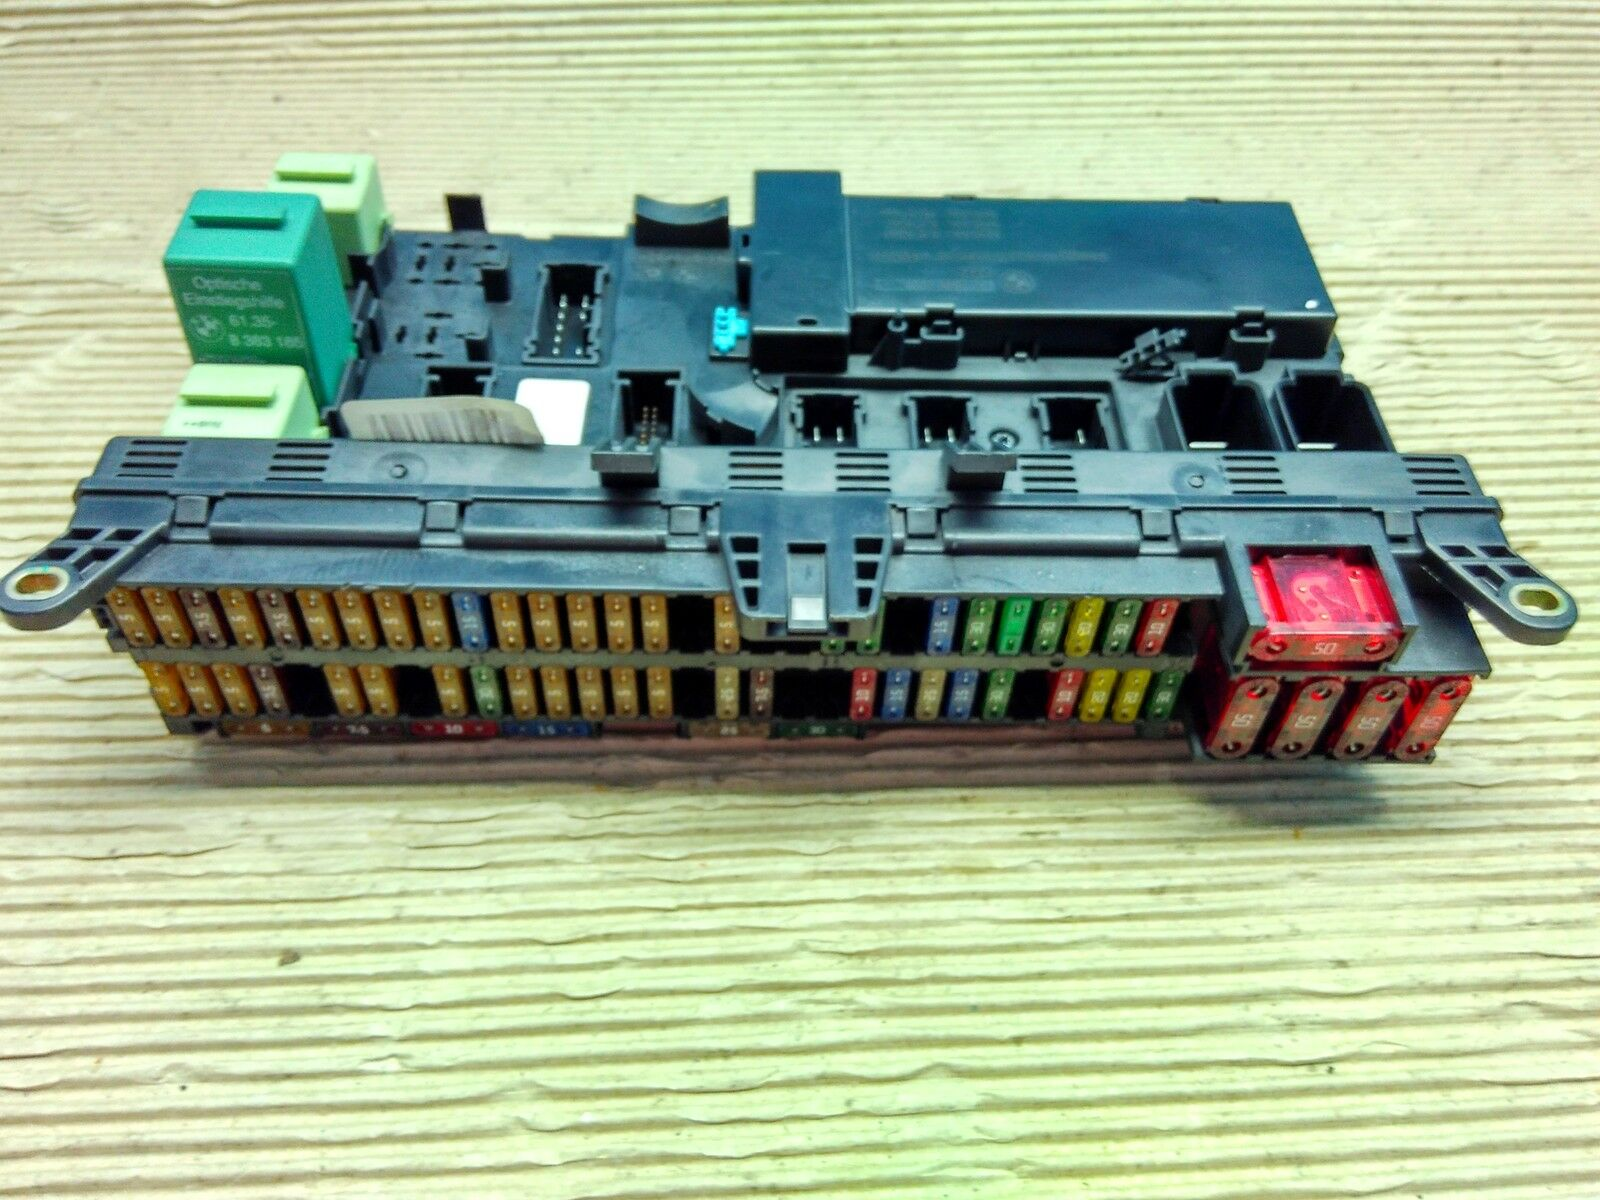 Fuse Box Buy Spares For Bmw I Fuses And E53 Detailed Schematics Diagram X5 Relay Board 6907395 8380409 Ebay 2002 Ford Ranger